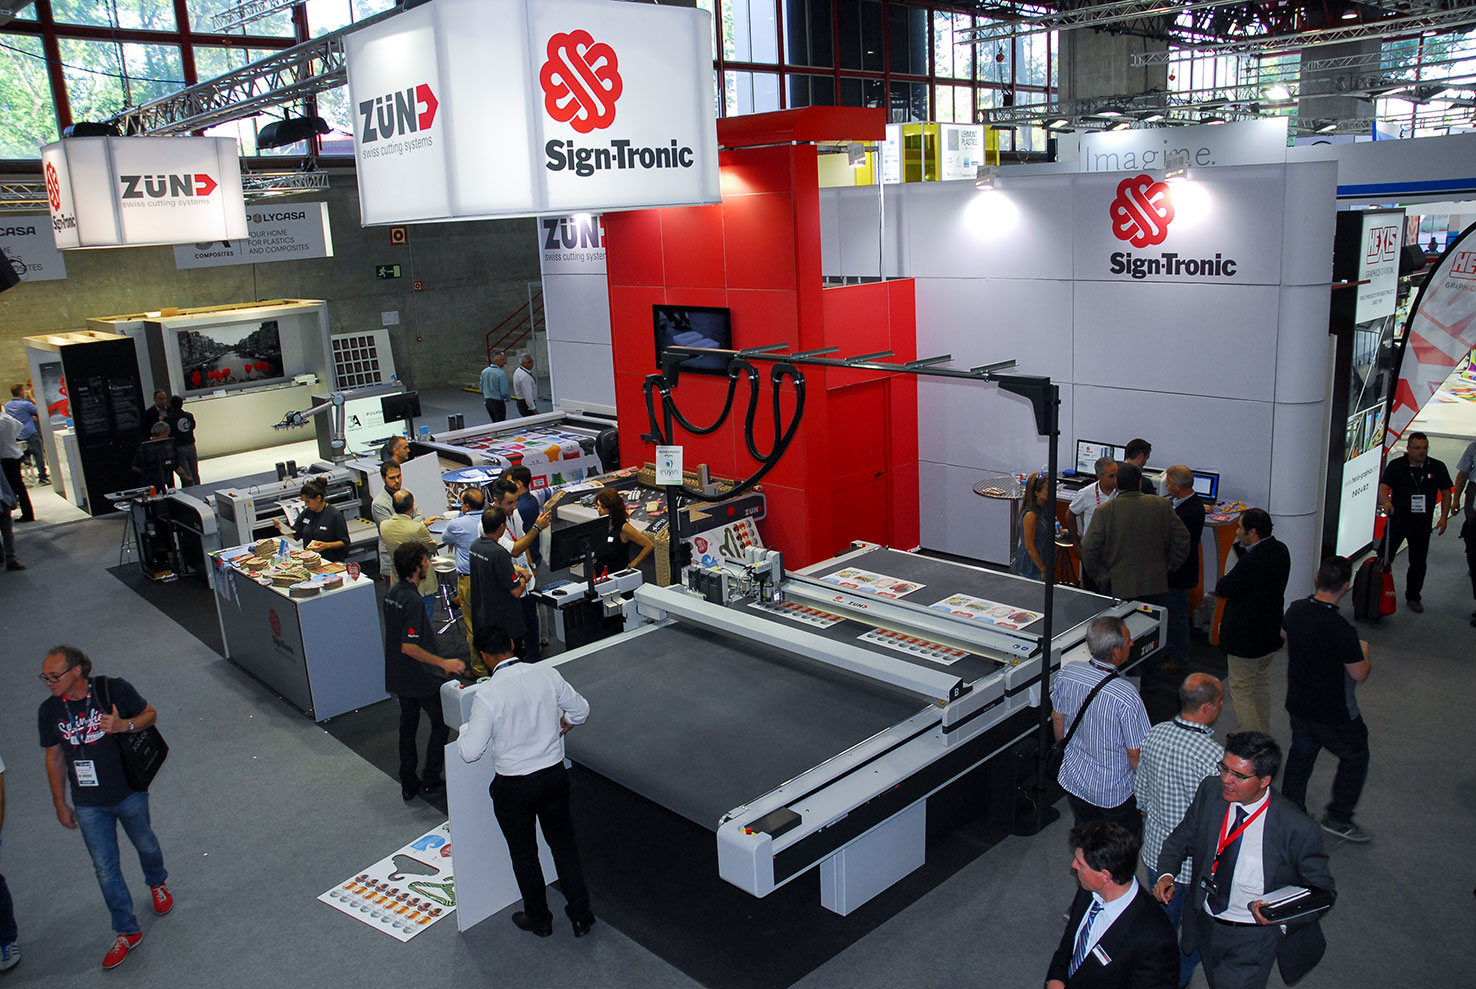 Vista general del stand de Sign-Tronic